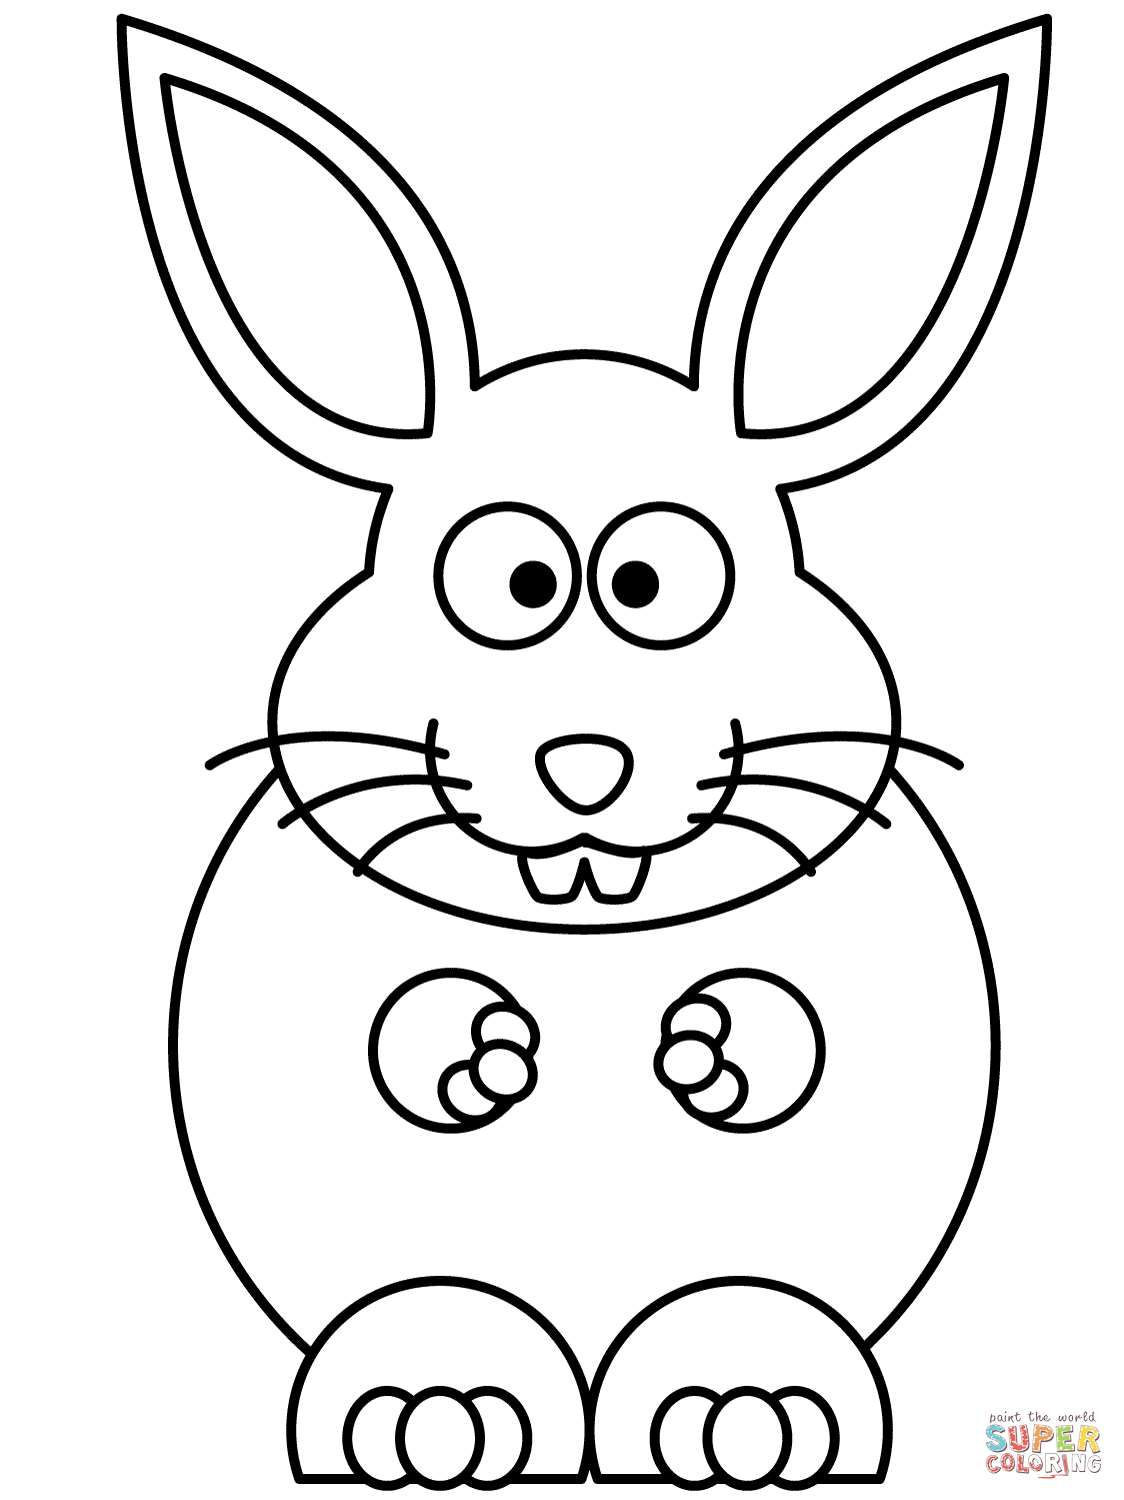 Comfortable Get This Easy Rabbit Coloring Pages For